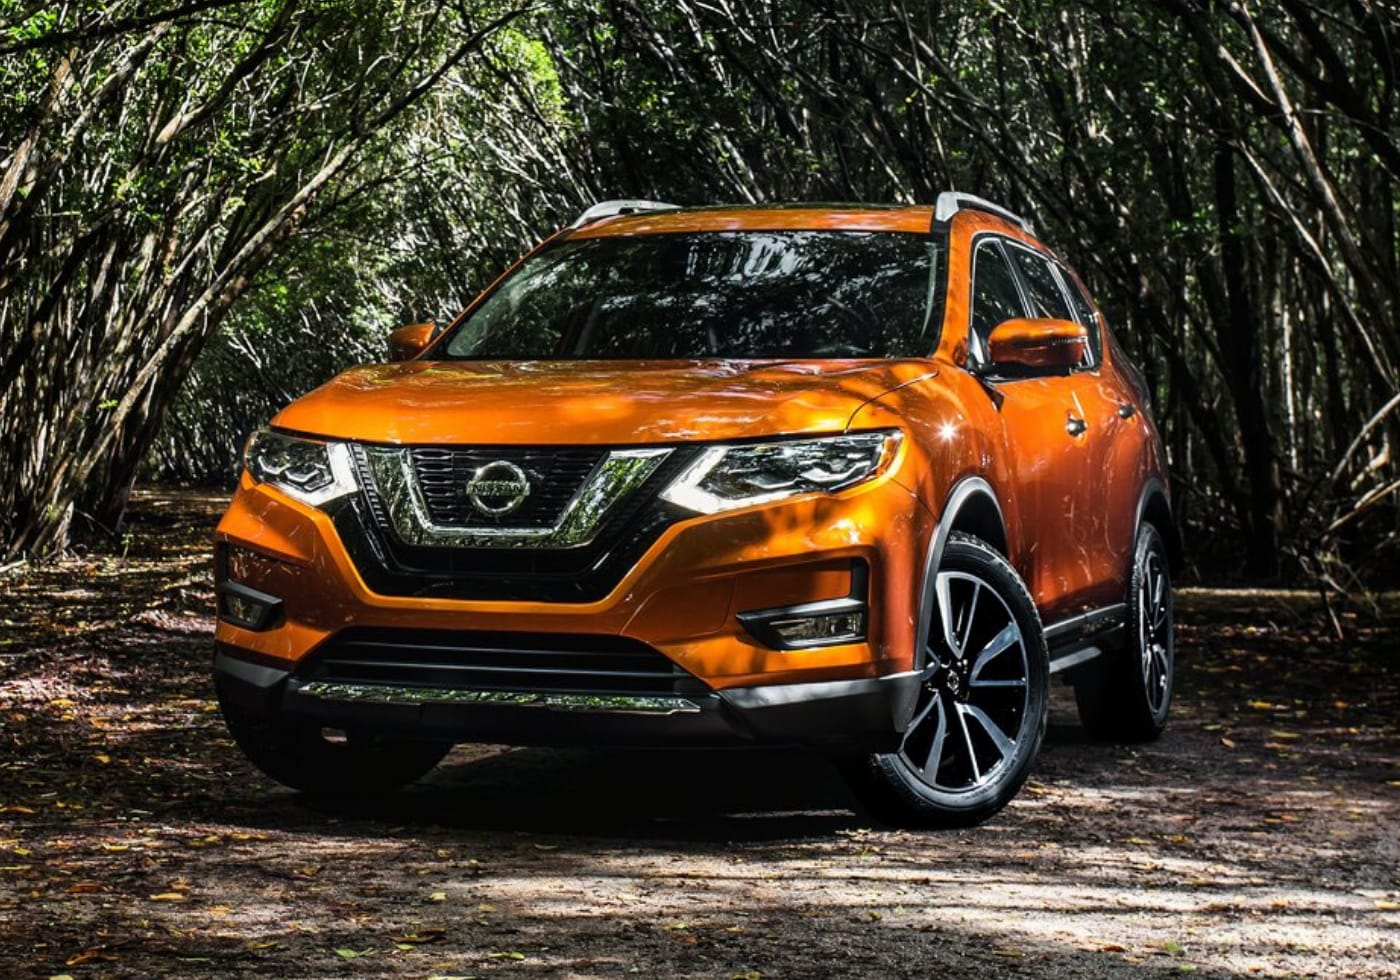 Used Orange 2018 Nissan Rogue parked on a pathway covered by large, overhanging trees grown together